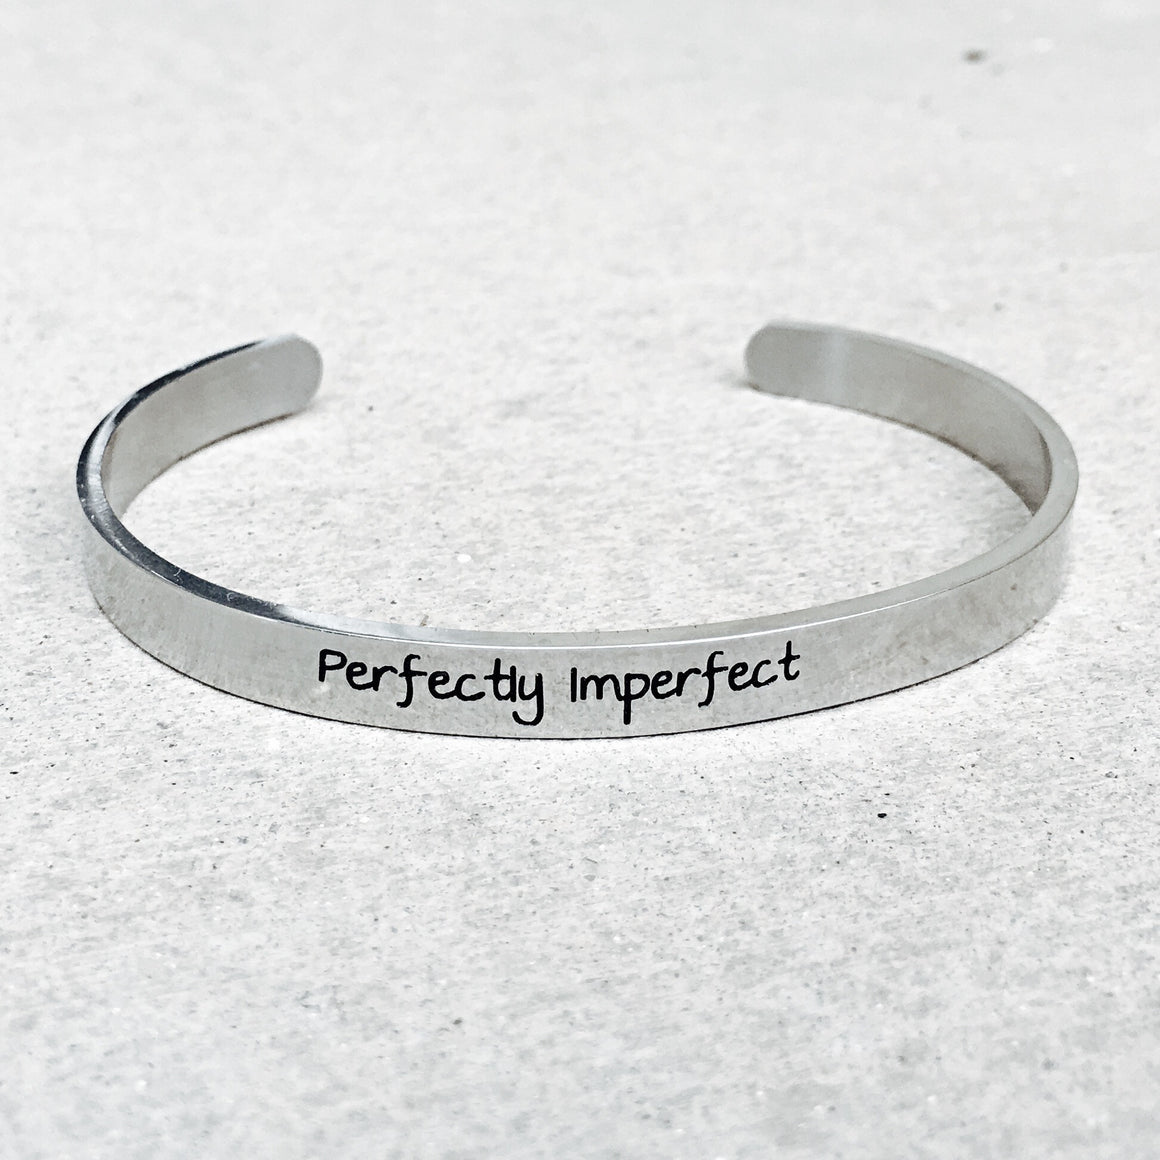 PERFECTLY IMPERFECT KARMA CUFF